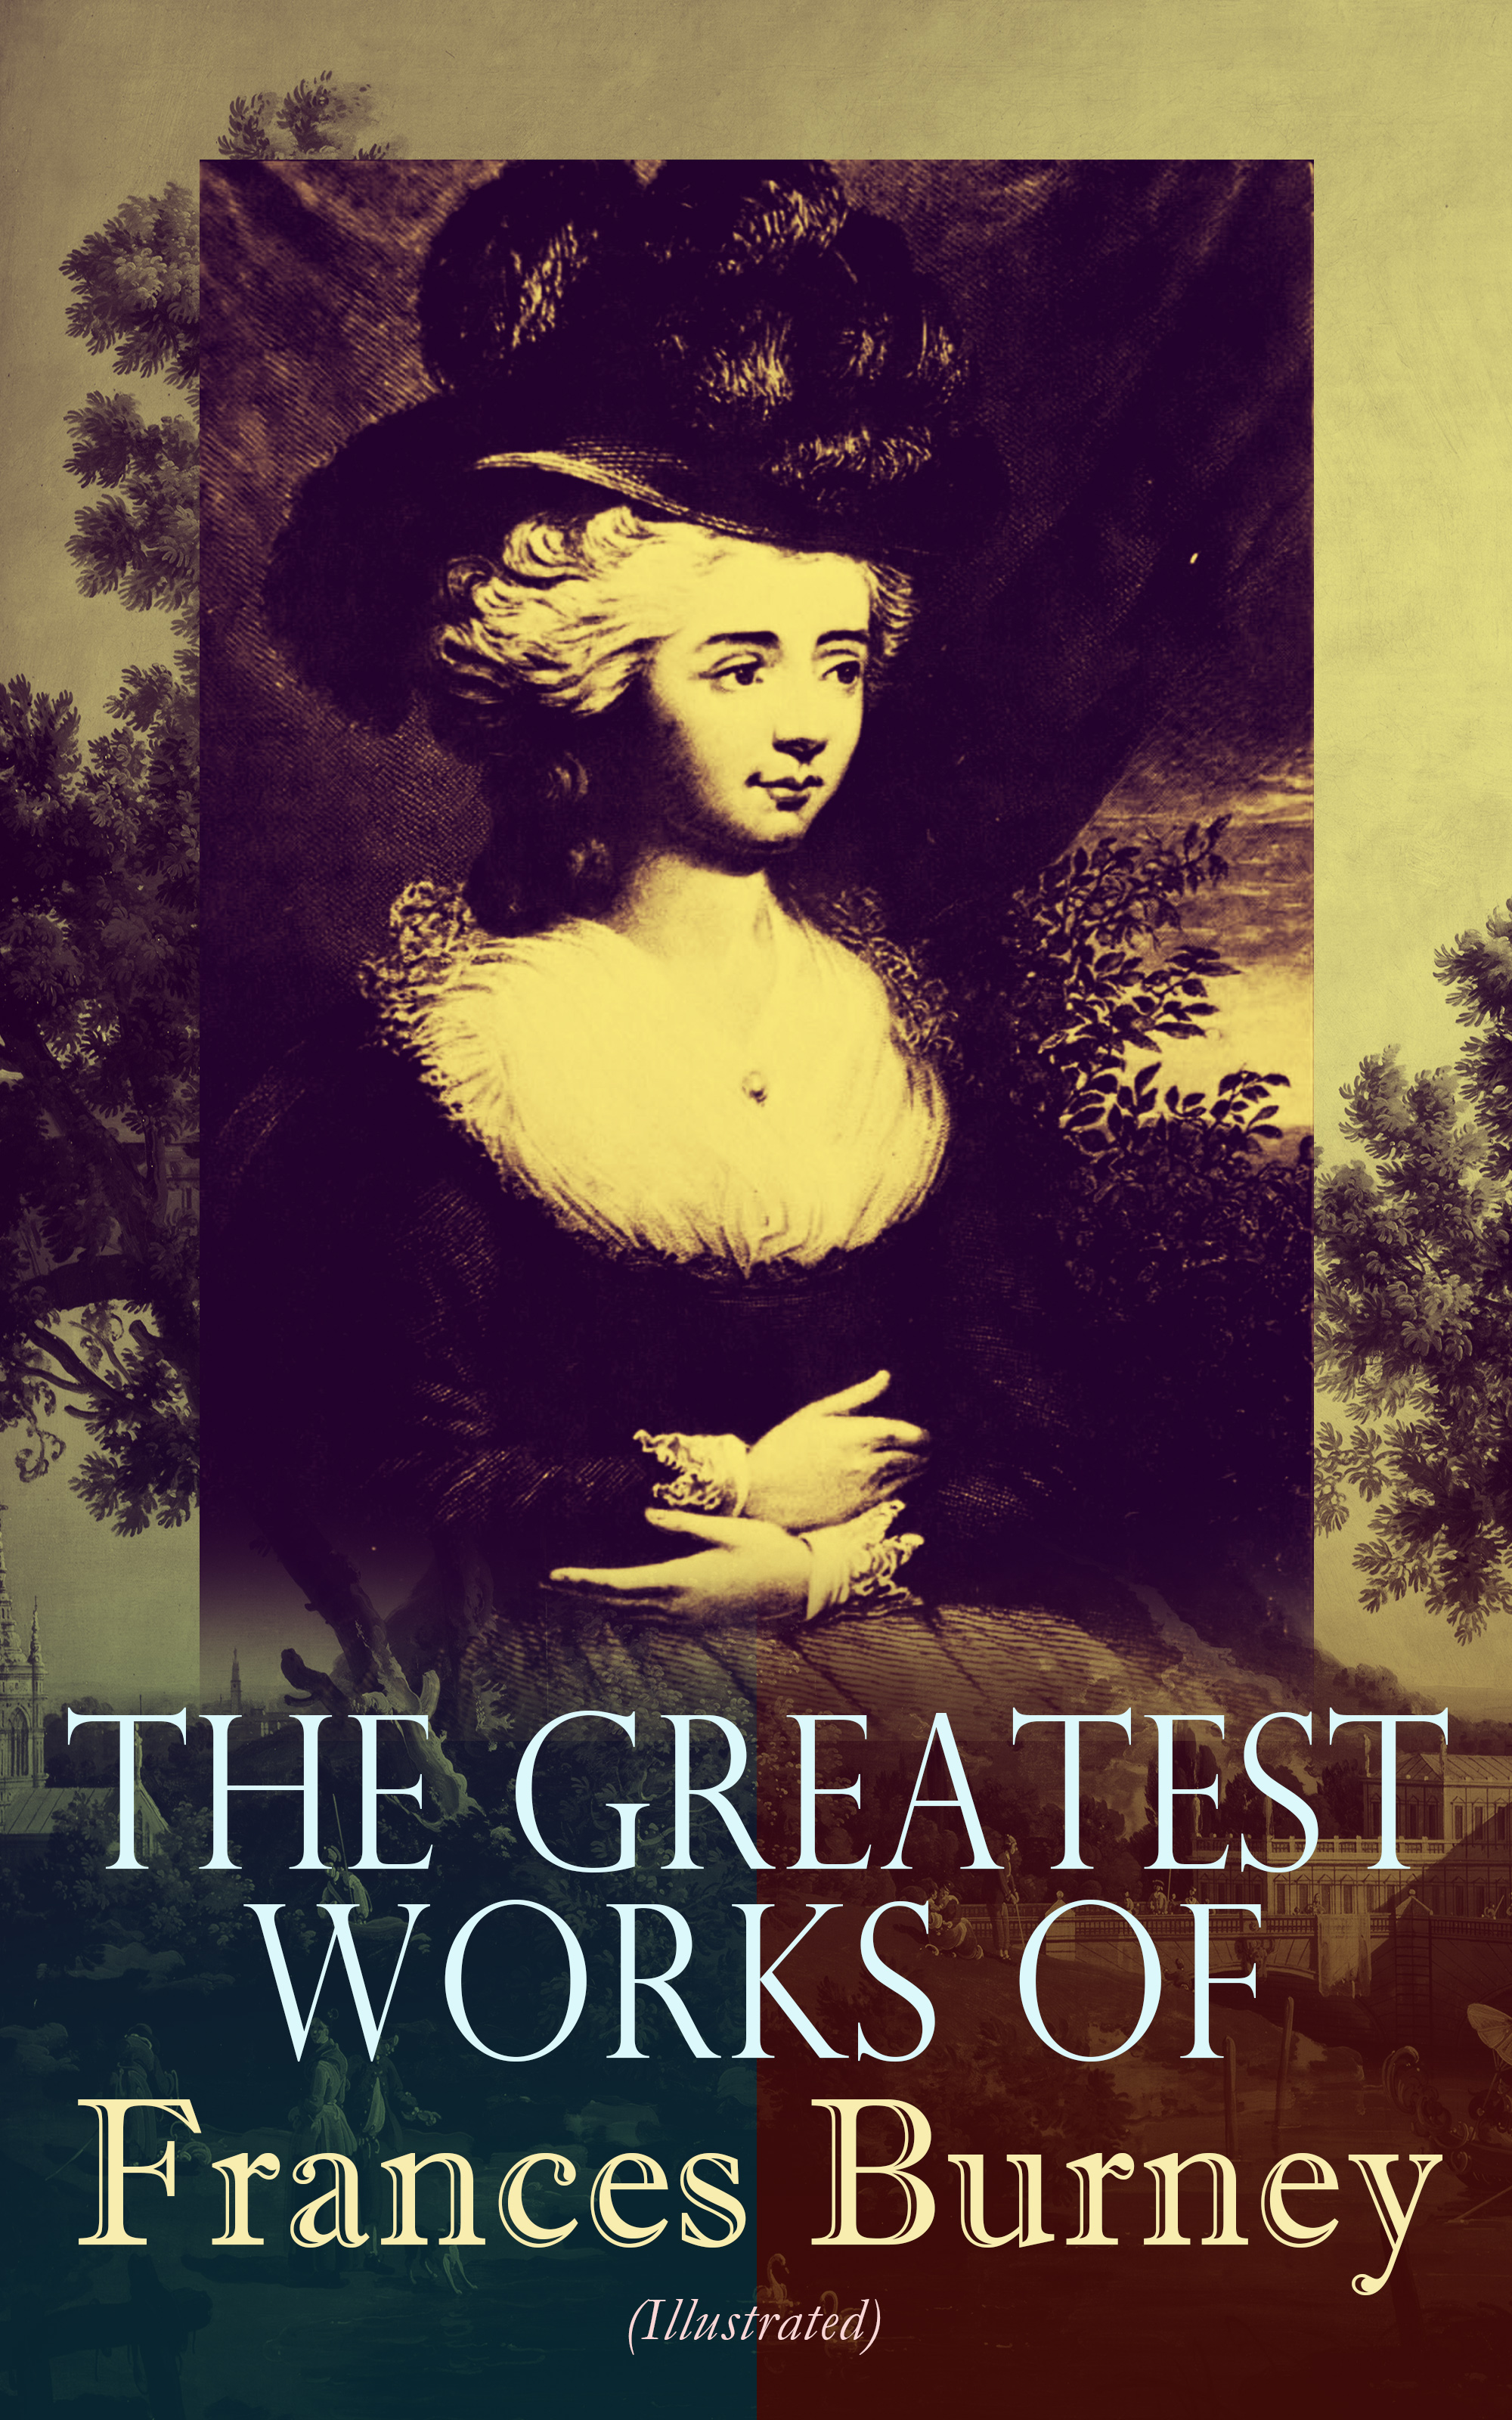 Frances Burney The Greatest Works of Frances Burney (Illustrated)